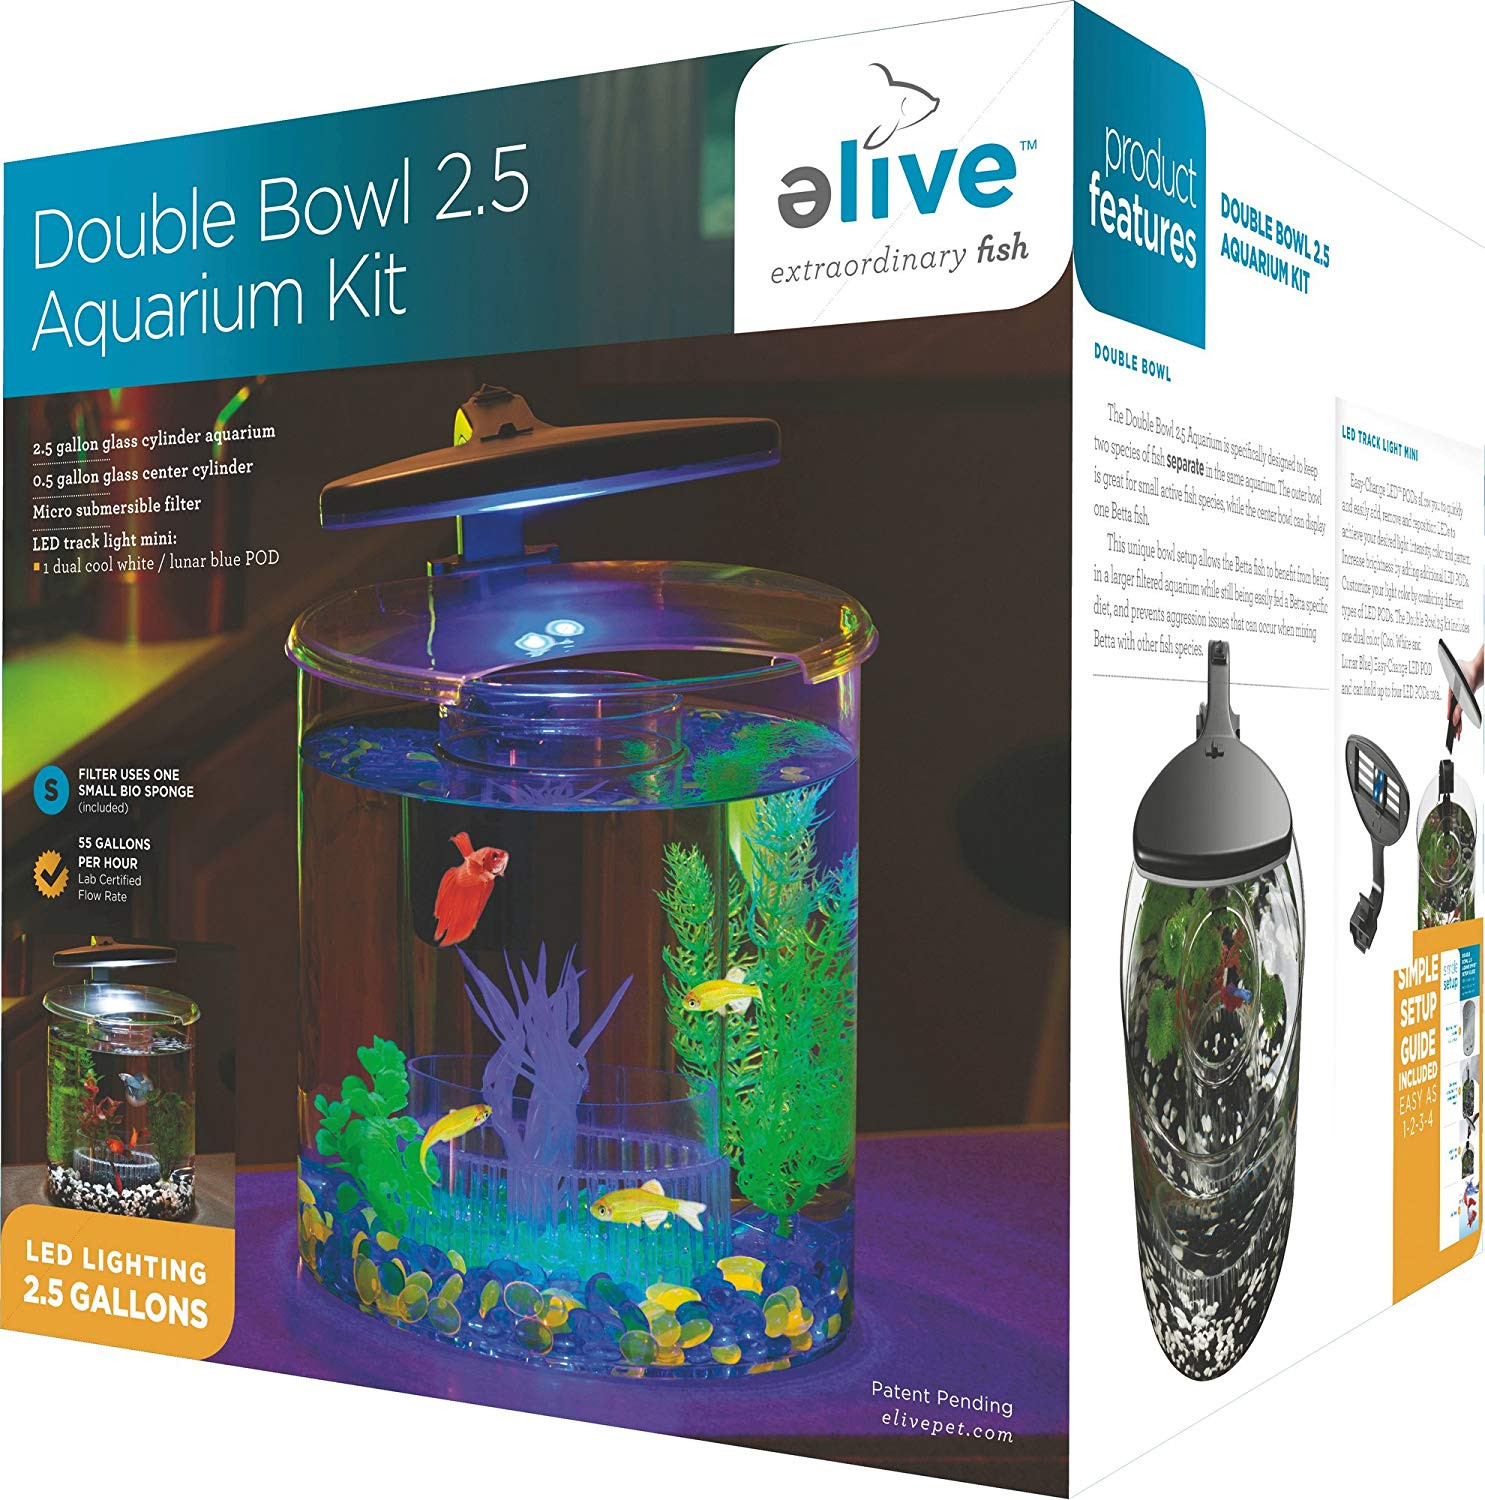 betta fish plant vase of amazon com elive double bowl aquarium kit 2 5 gallon betta for amazon com elive double bowl aquarium kit 2 5 gallon betta aquarium with filter and fish tank led track light pet supplies